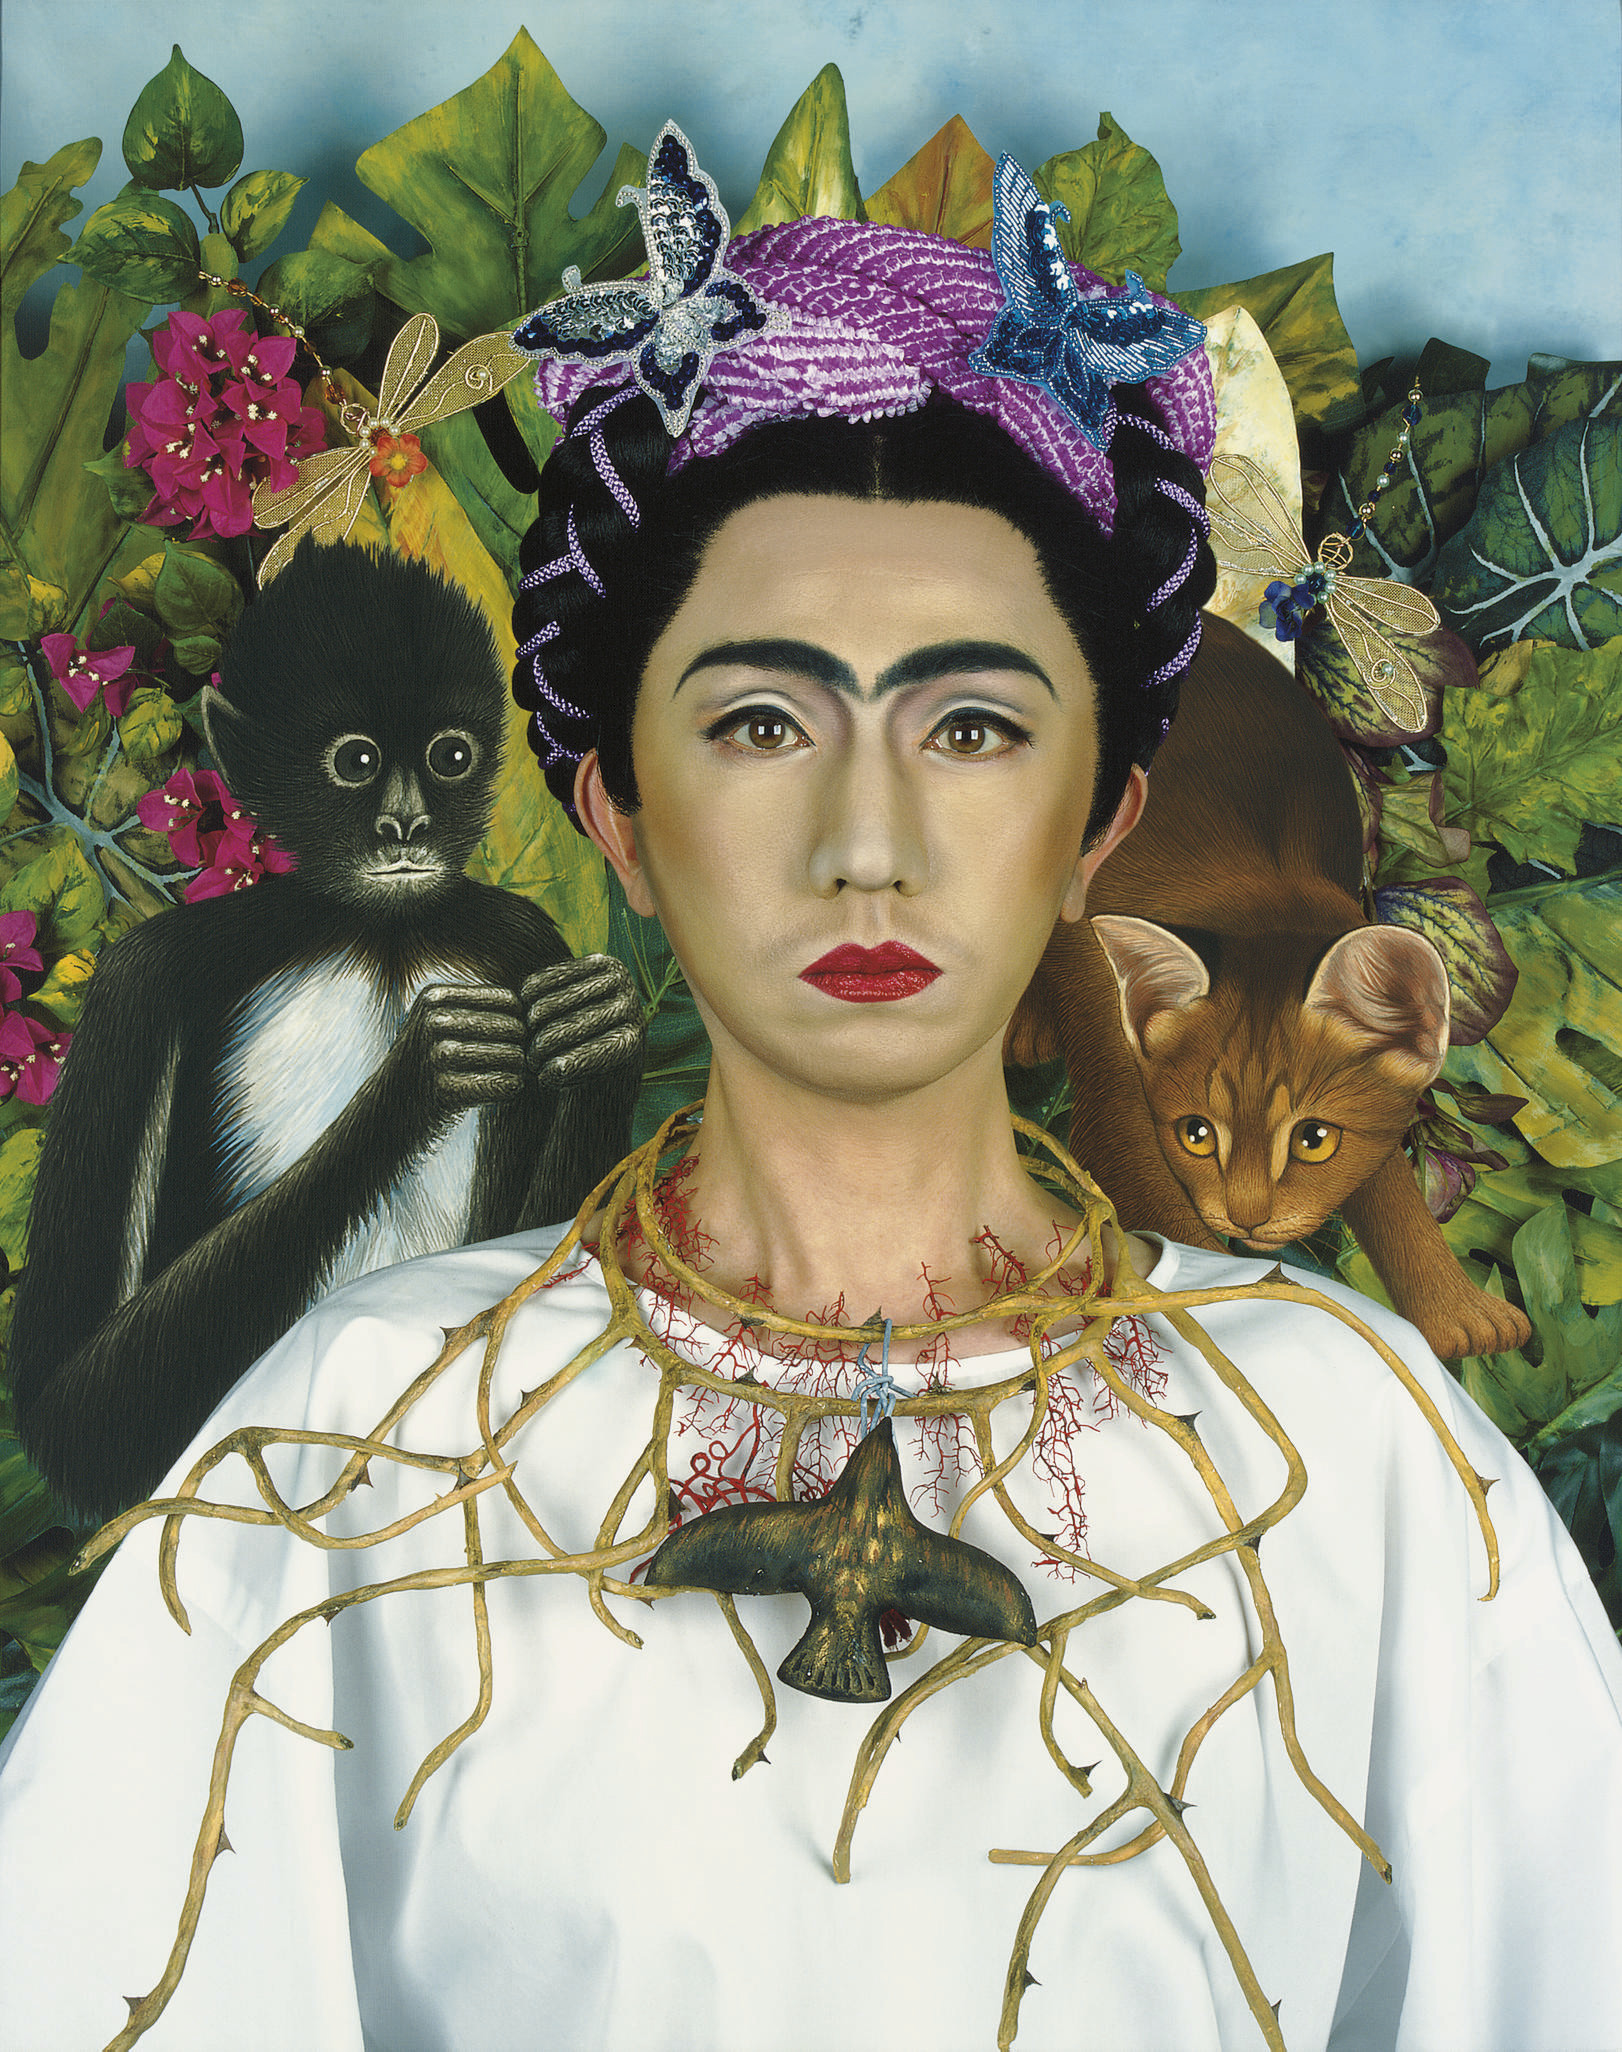 An Inner Dialogue with Frida Kahlo (Collar of Thorns)